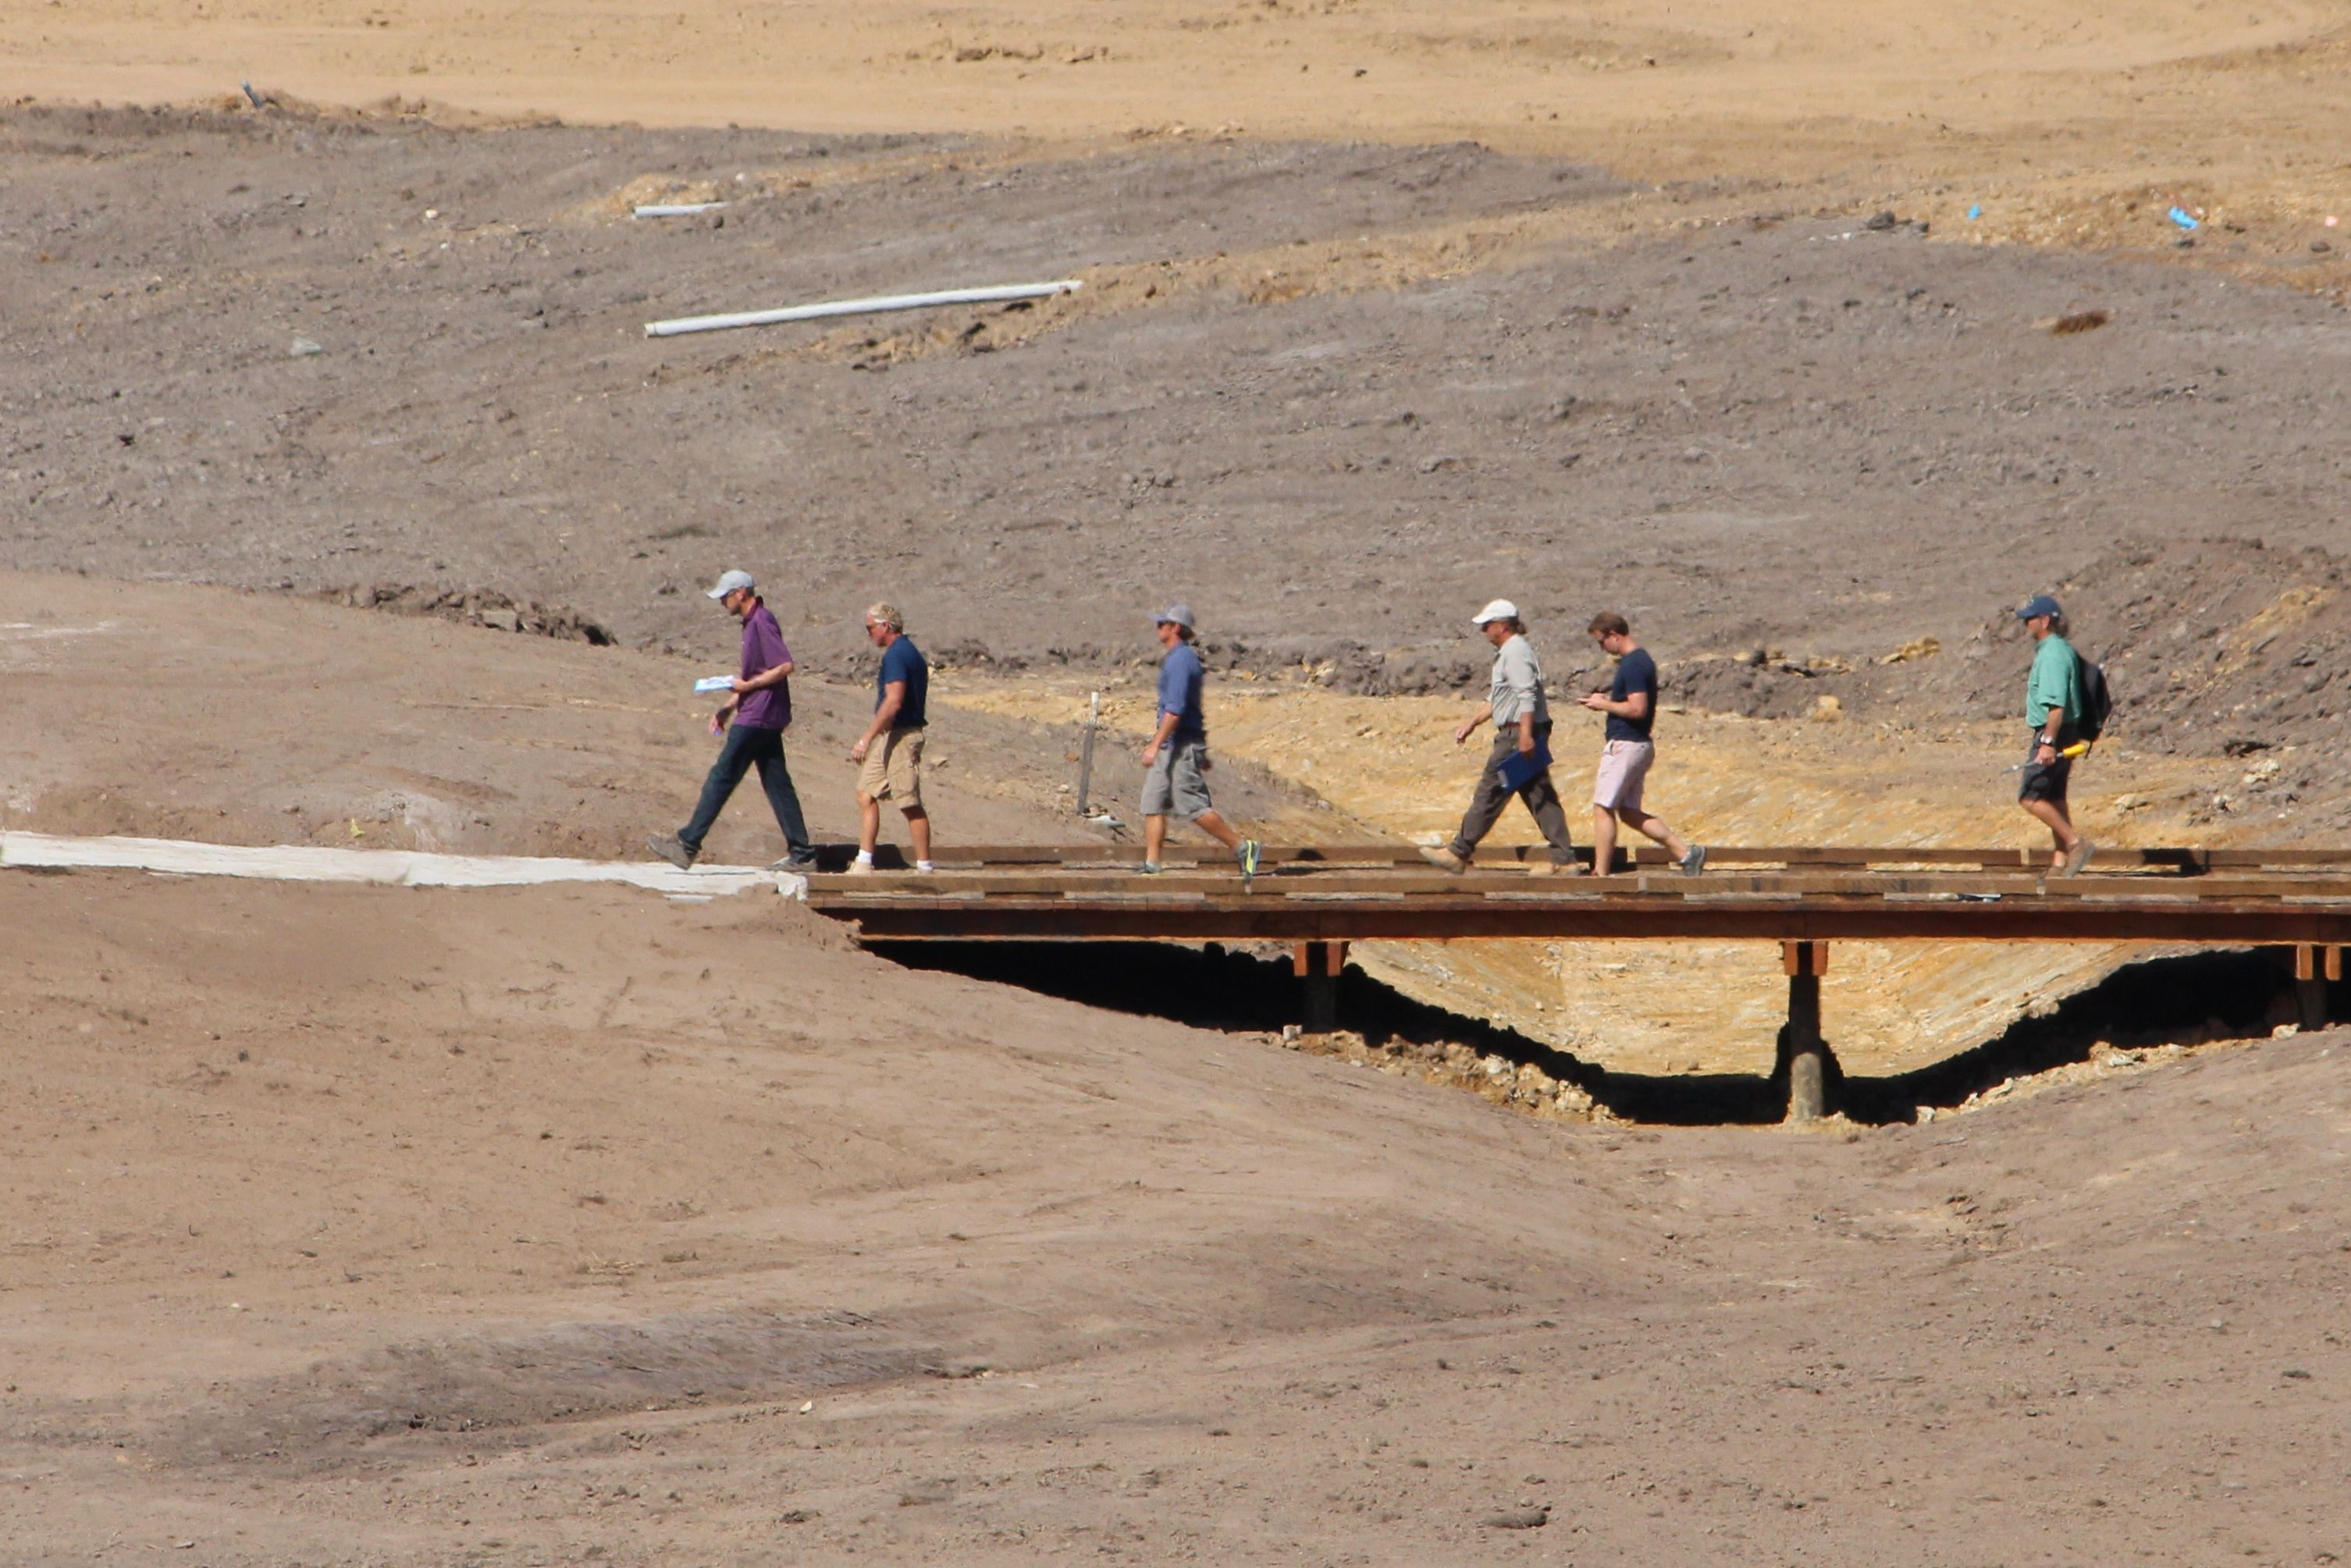 Greg Norman And His Team Viewing The New Eastern Golf Club Site In The Yarra Valley Easterngc Attacklife Shark Ya Yarra Valley Golf Courses Nature Reserve